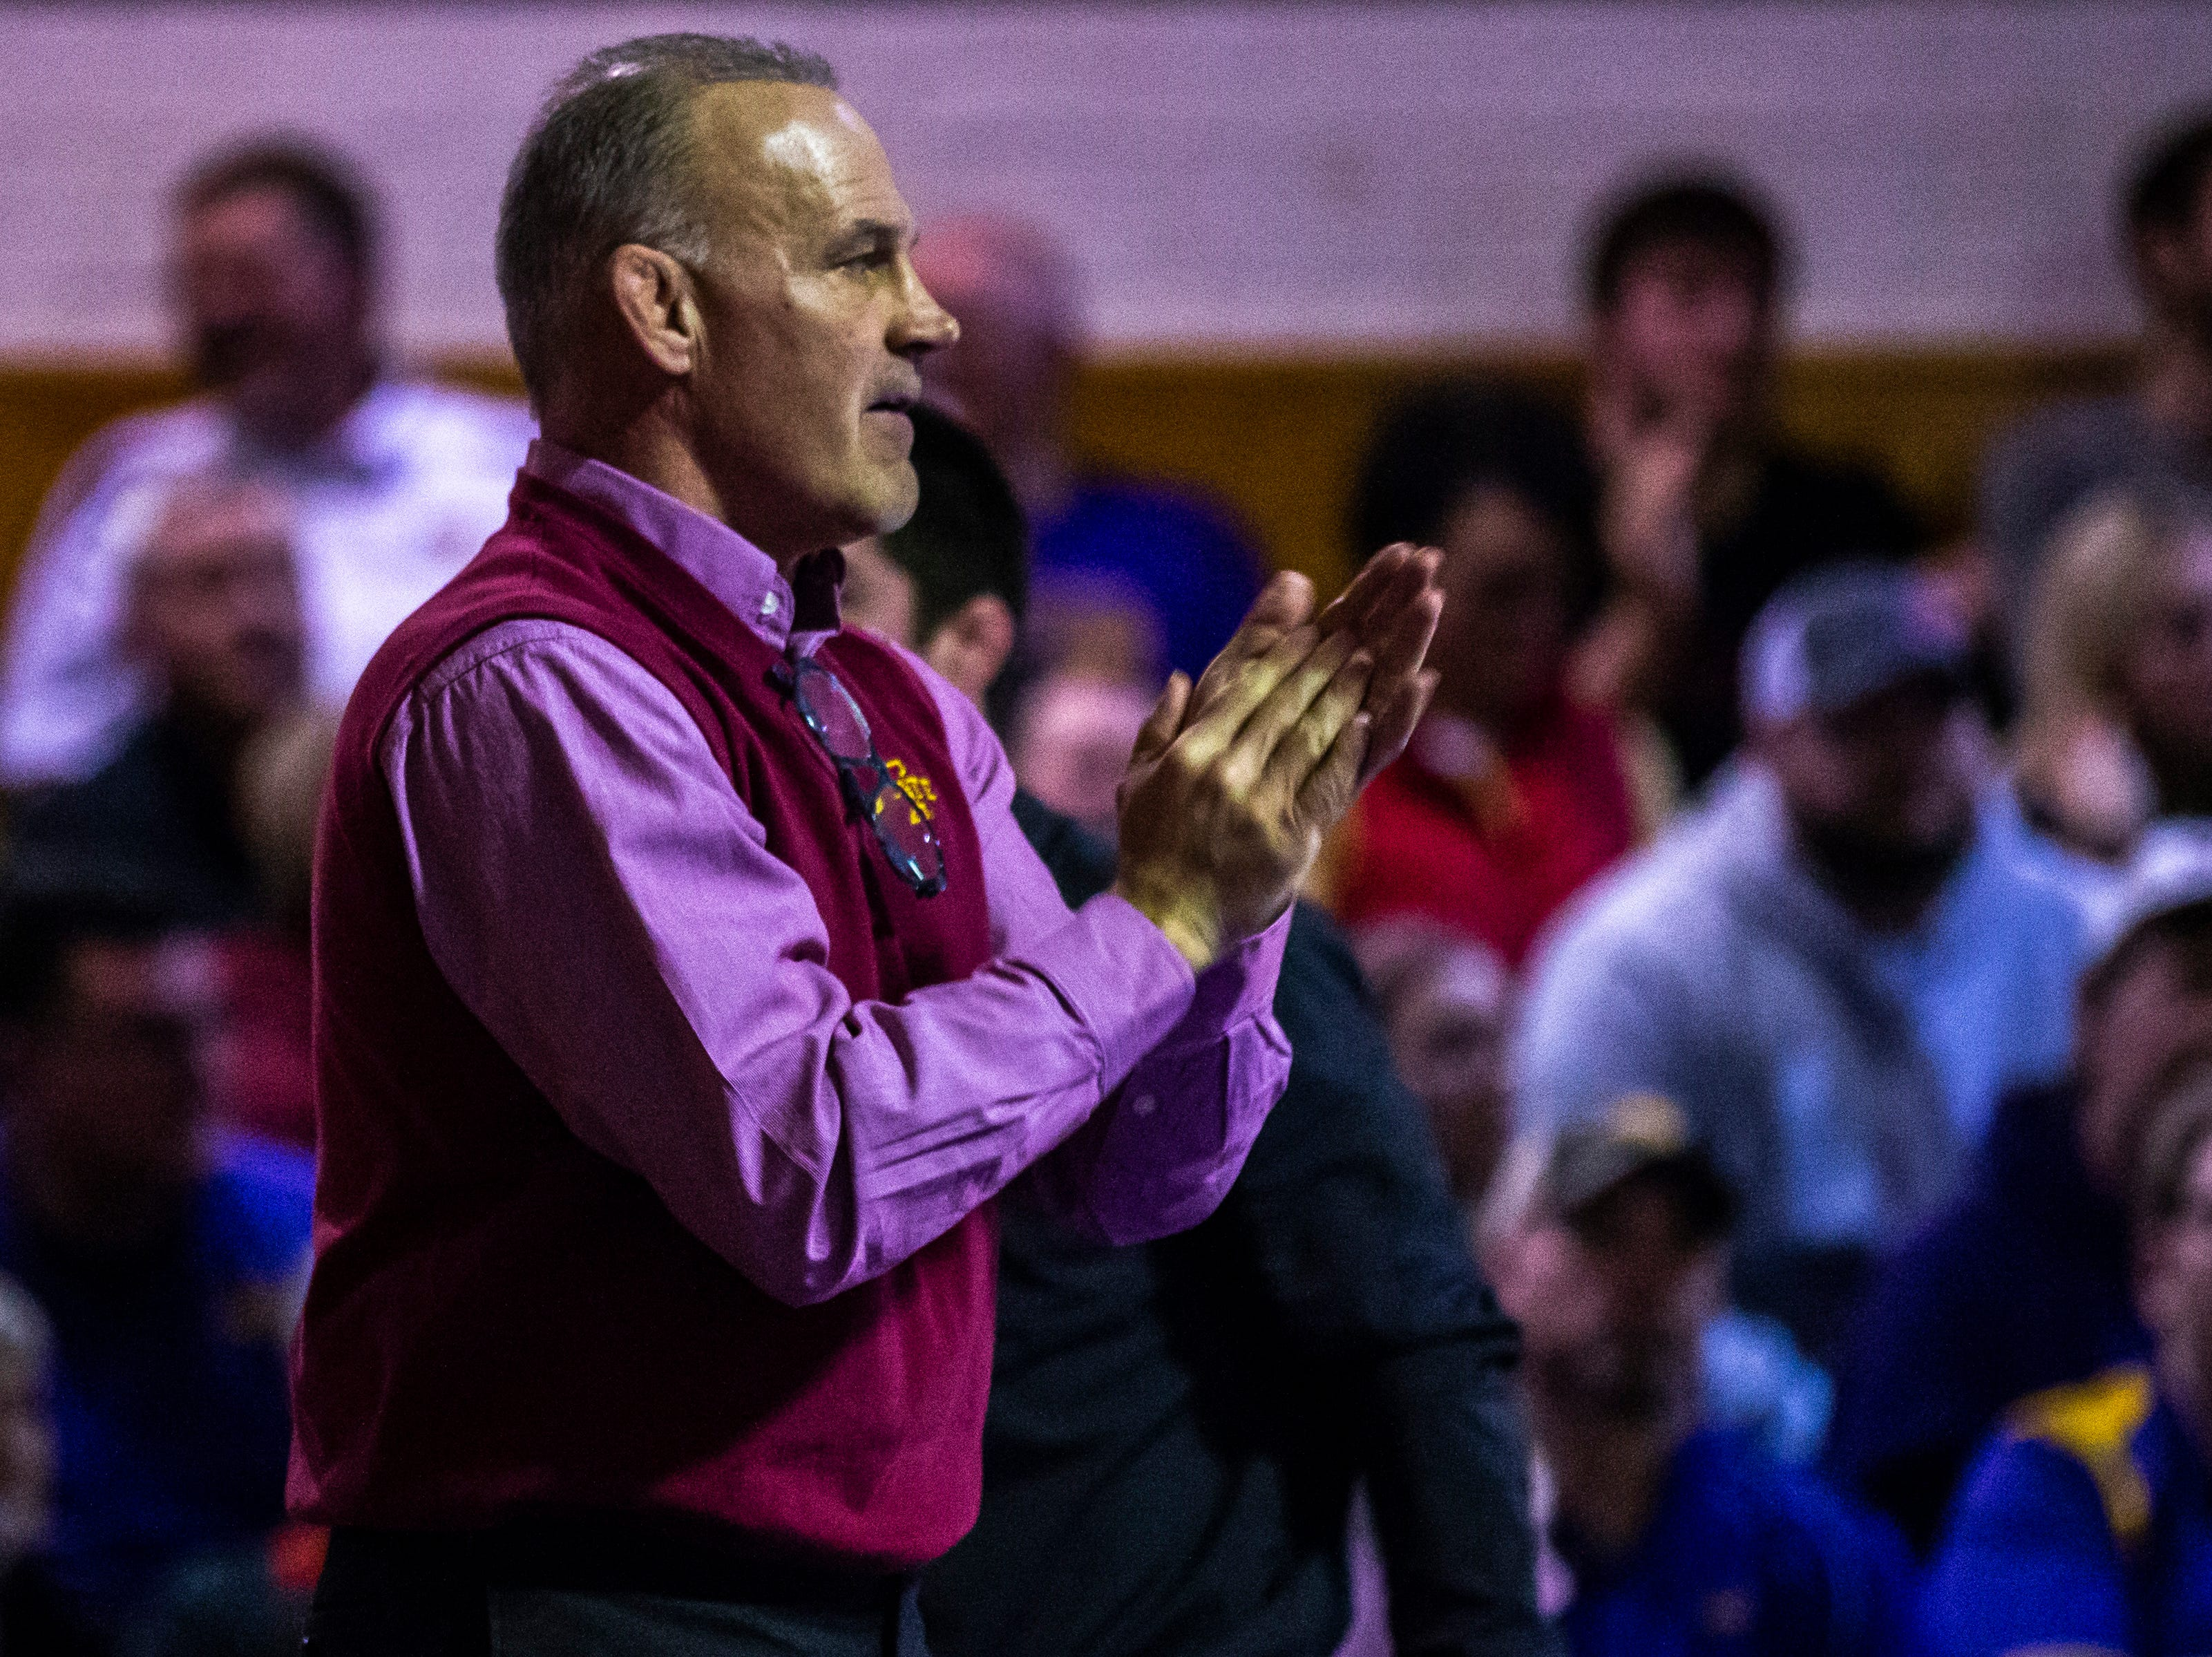 Iowa State head coach Kevin Dresser claps during a NCAA Big 12 wrestling dual on Thursday, Feb. 21, 2019 at the West Gymnasium in Cedar Falls, Iowa.